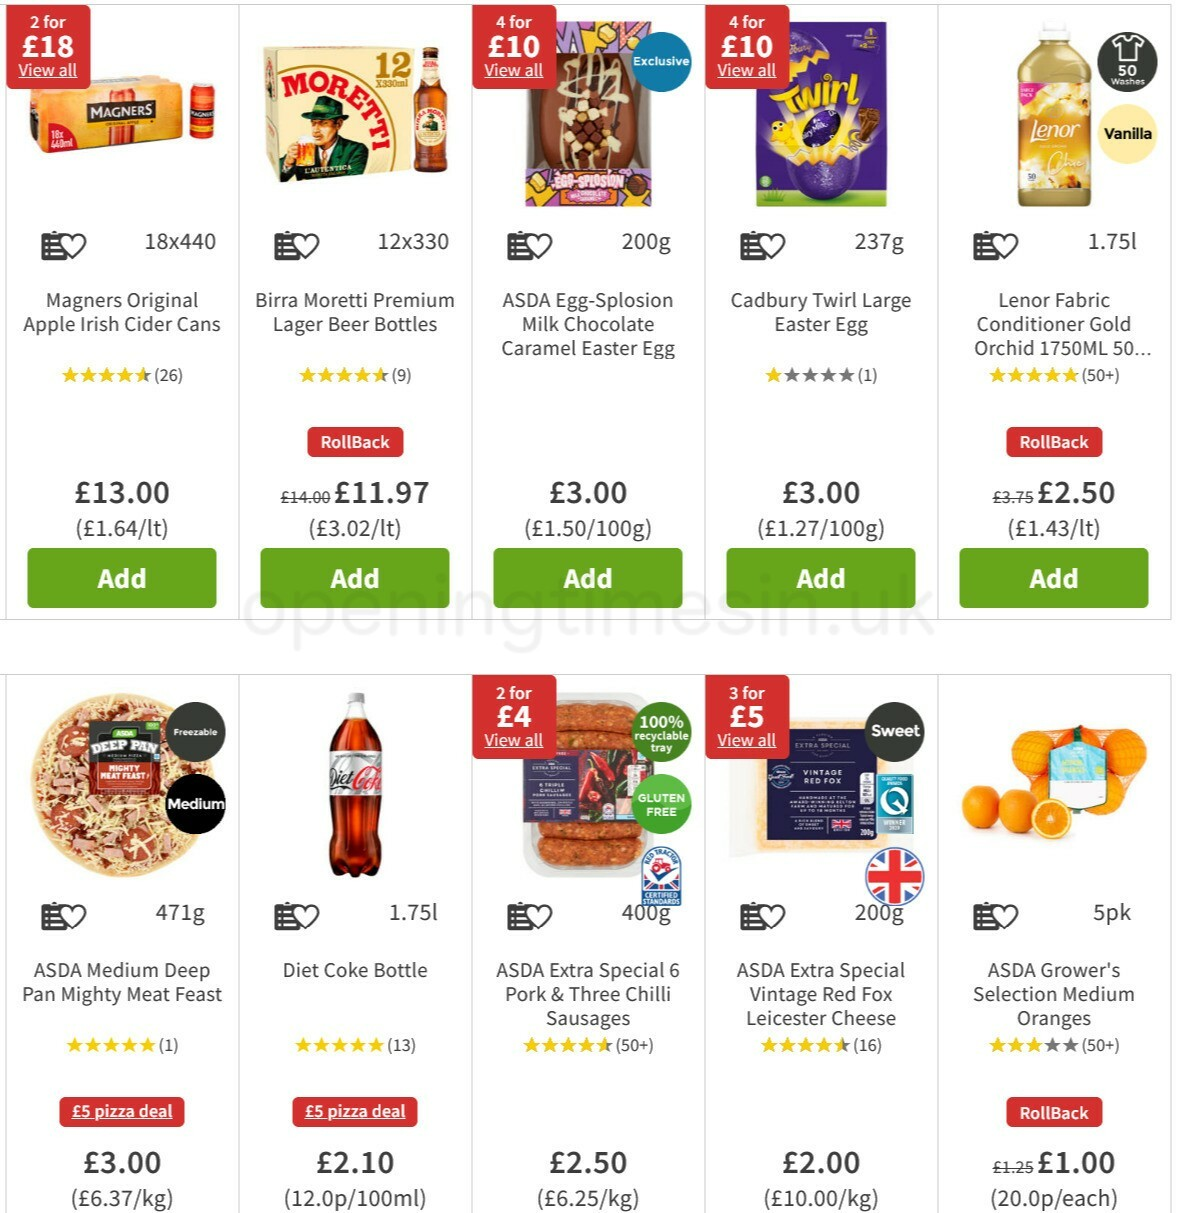 ASDA Offers from February 25